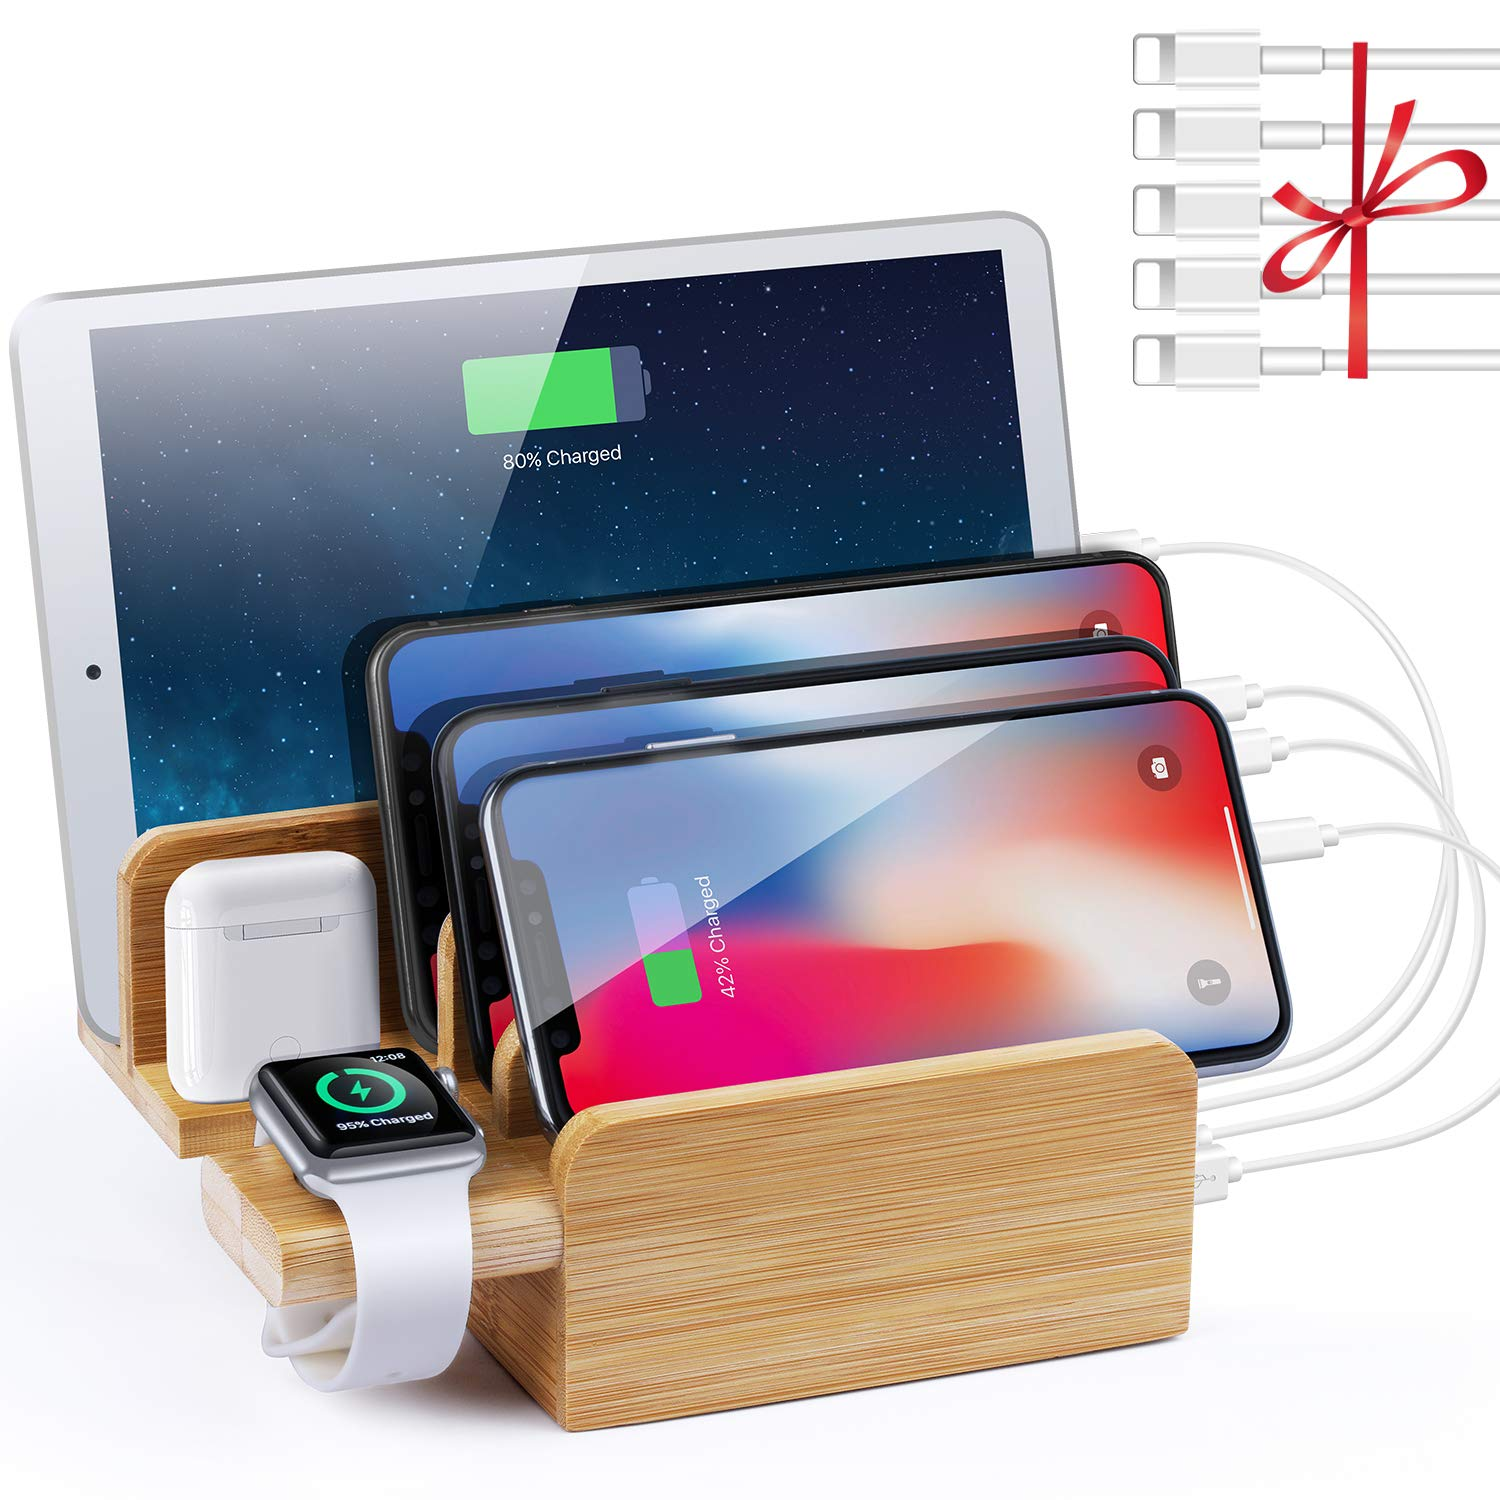 NEXGADGET 6 in 1 Bamboo Charging Station for Multiple Devices,6 Port 40W USB Desktop Charger,Fast USB Charging Station Organizer for Cellphone,Smart Watch,Tablets and Other USB Devices(5 Pack Cables) by NEXGADGET